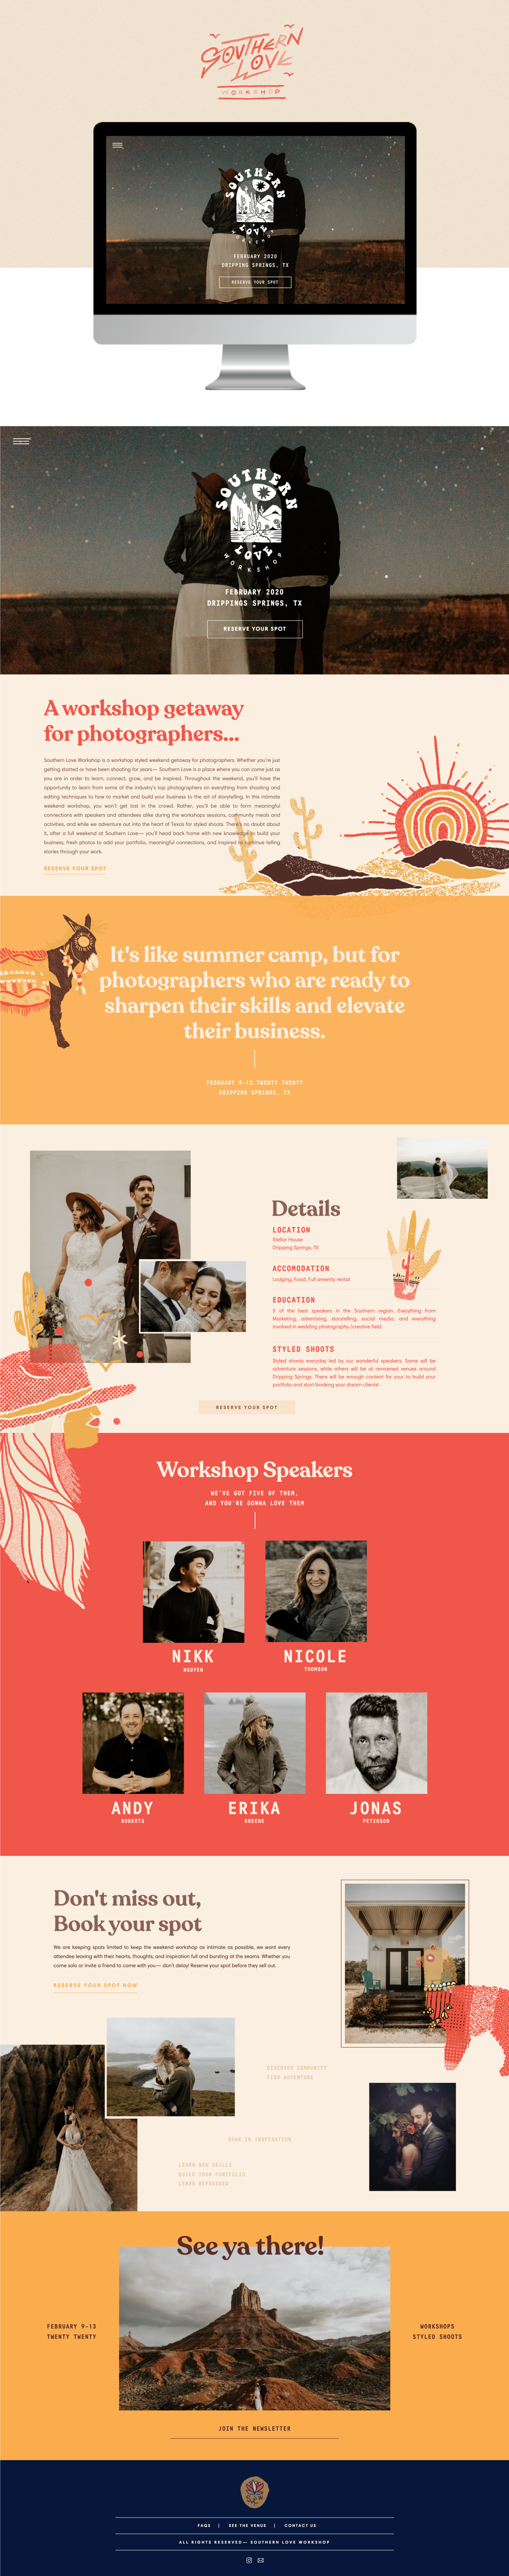 ThirdStoryApt-CustomWebsite-SouthernLoveWorkshop